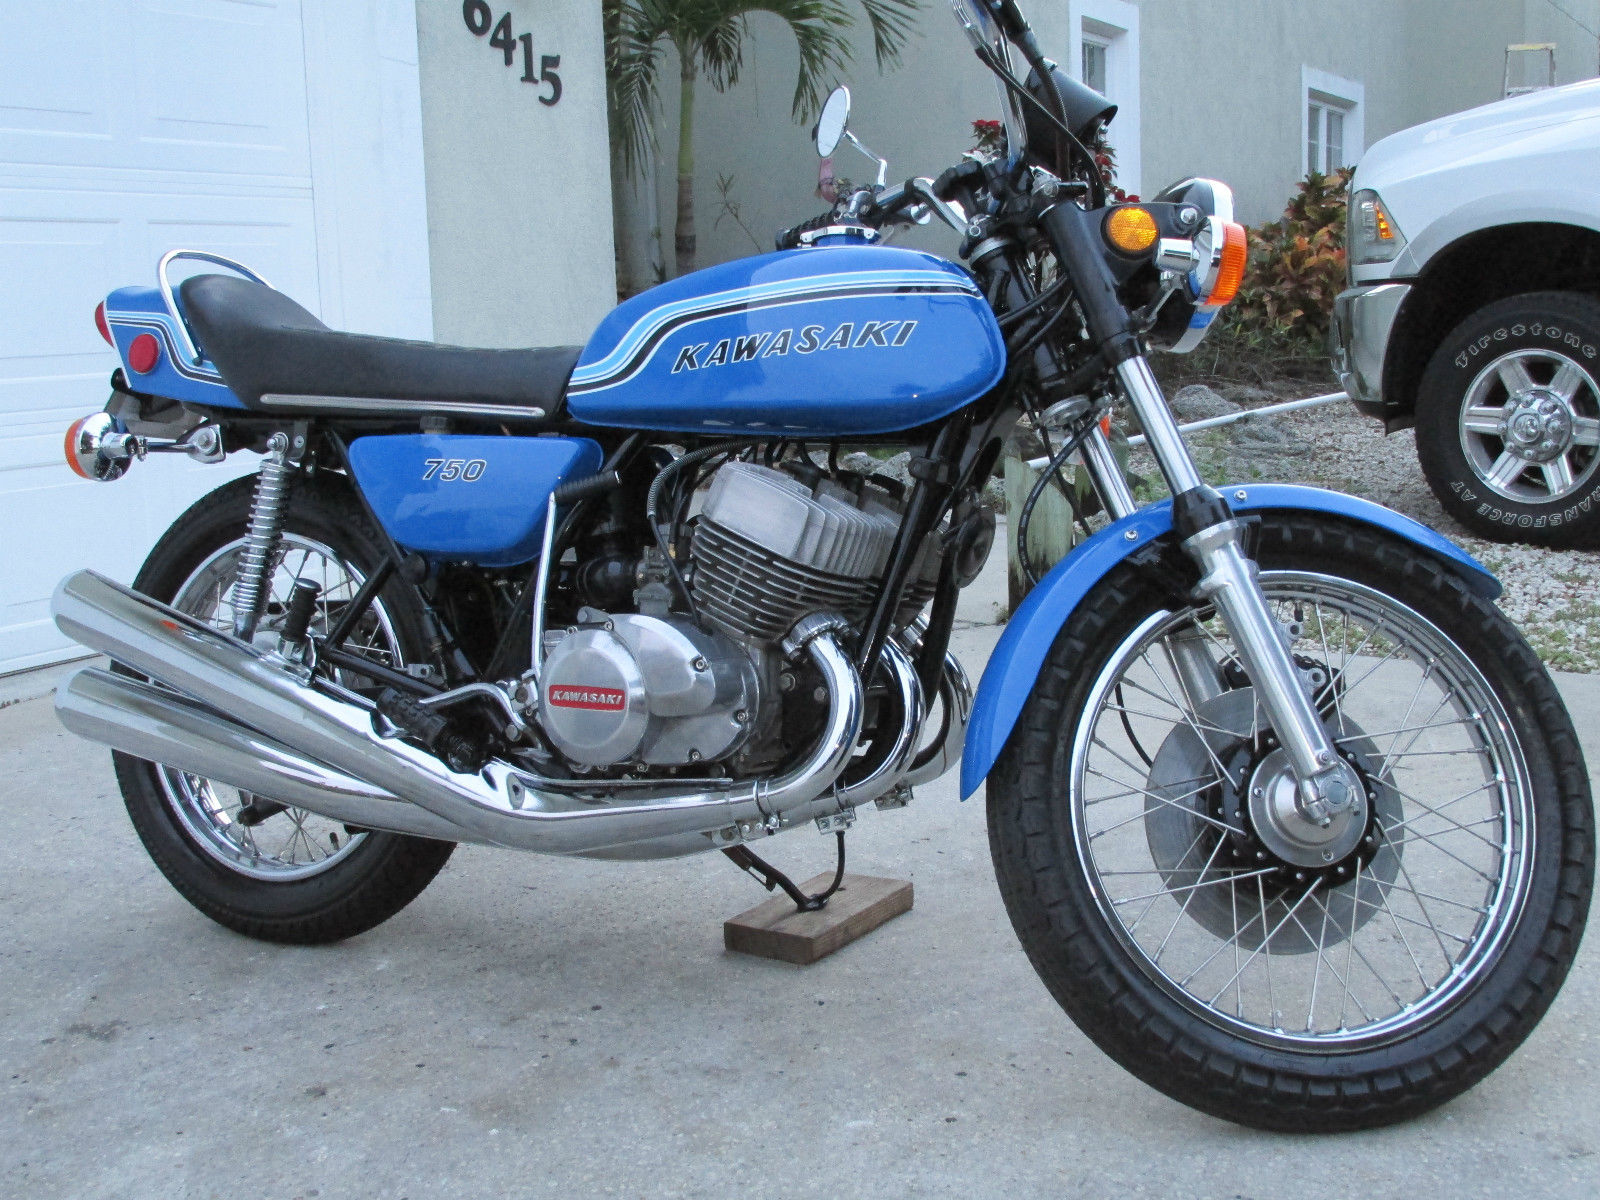 Kawasaki H2 - 1972 - Engine and Gearbox, Carburettors, Wheels and Brakes.